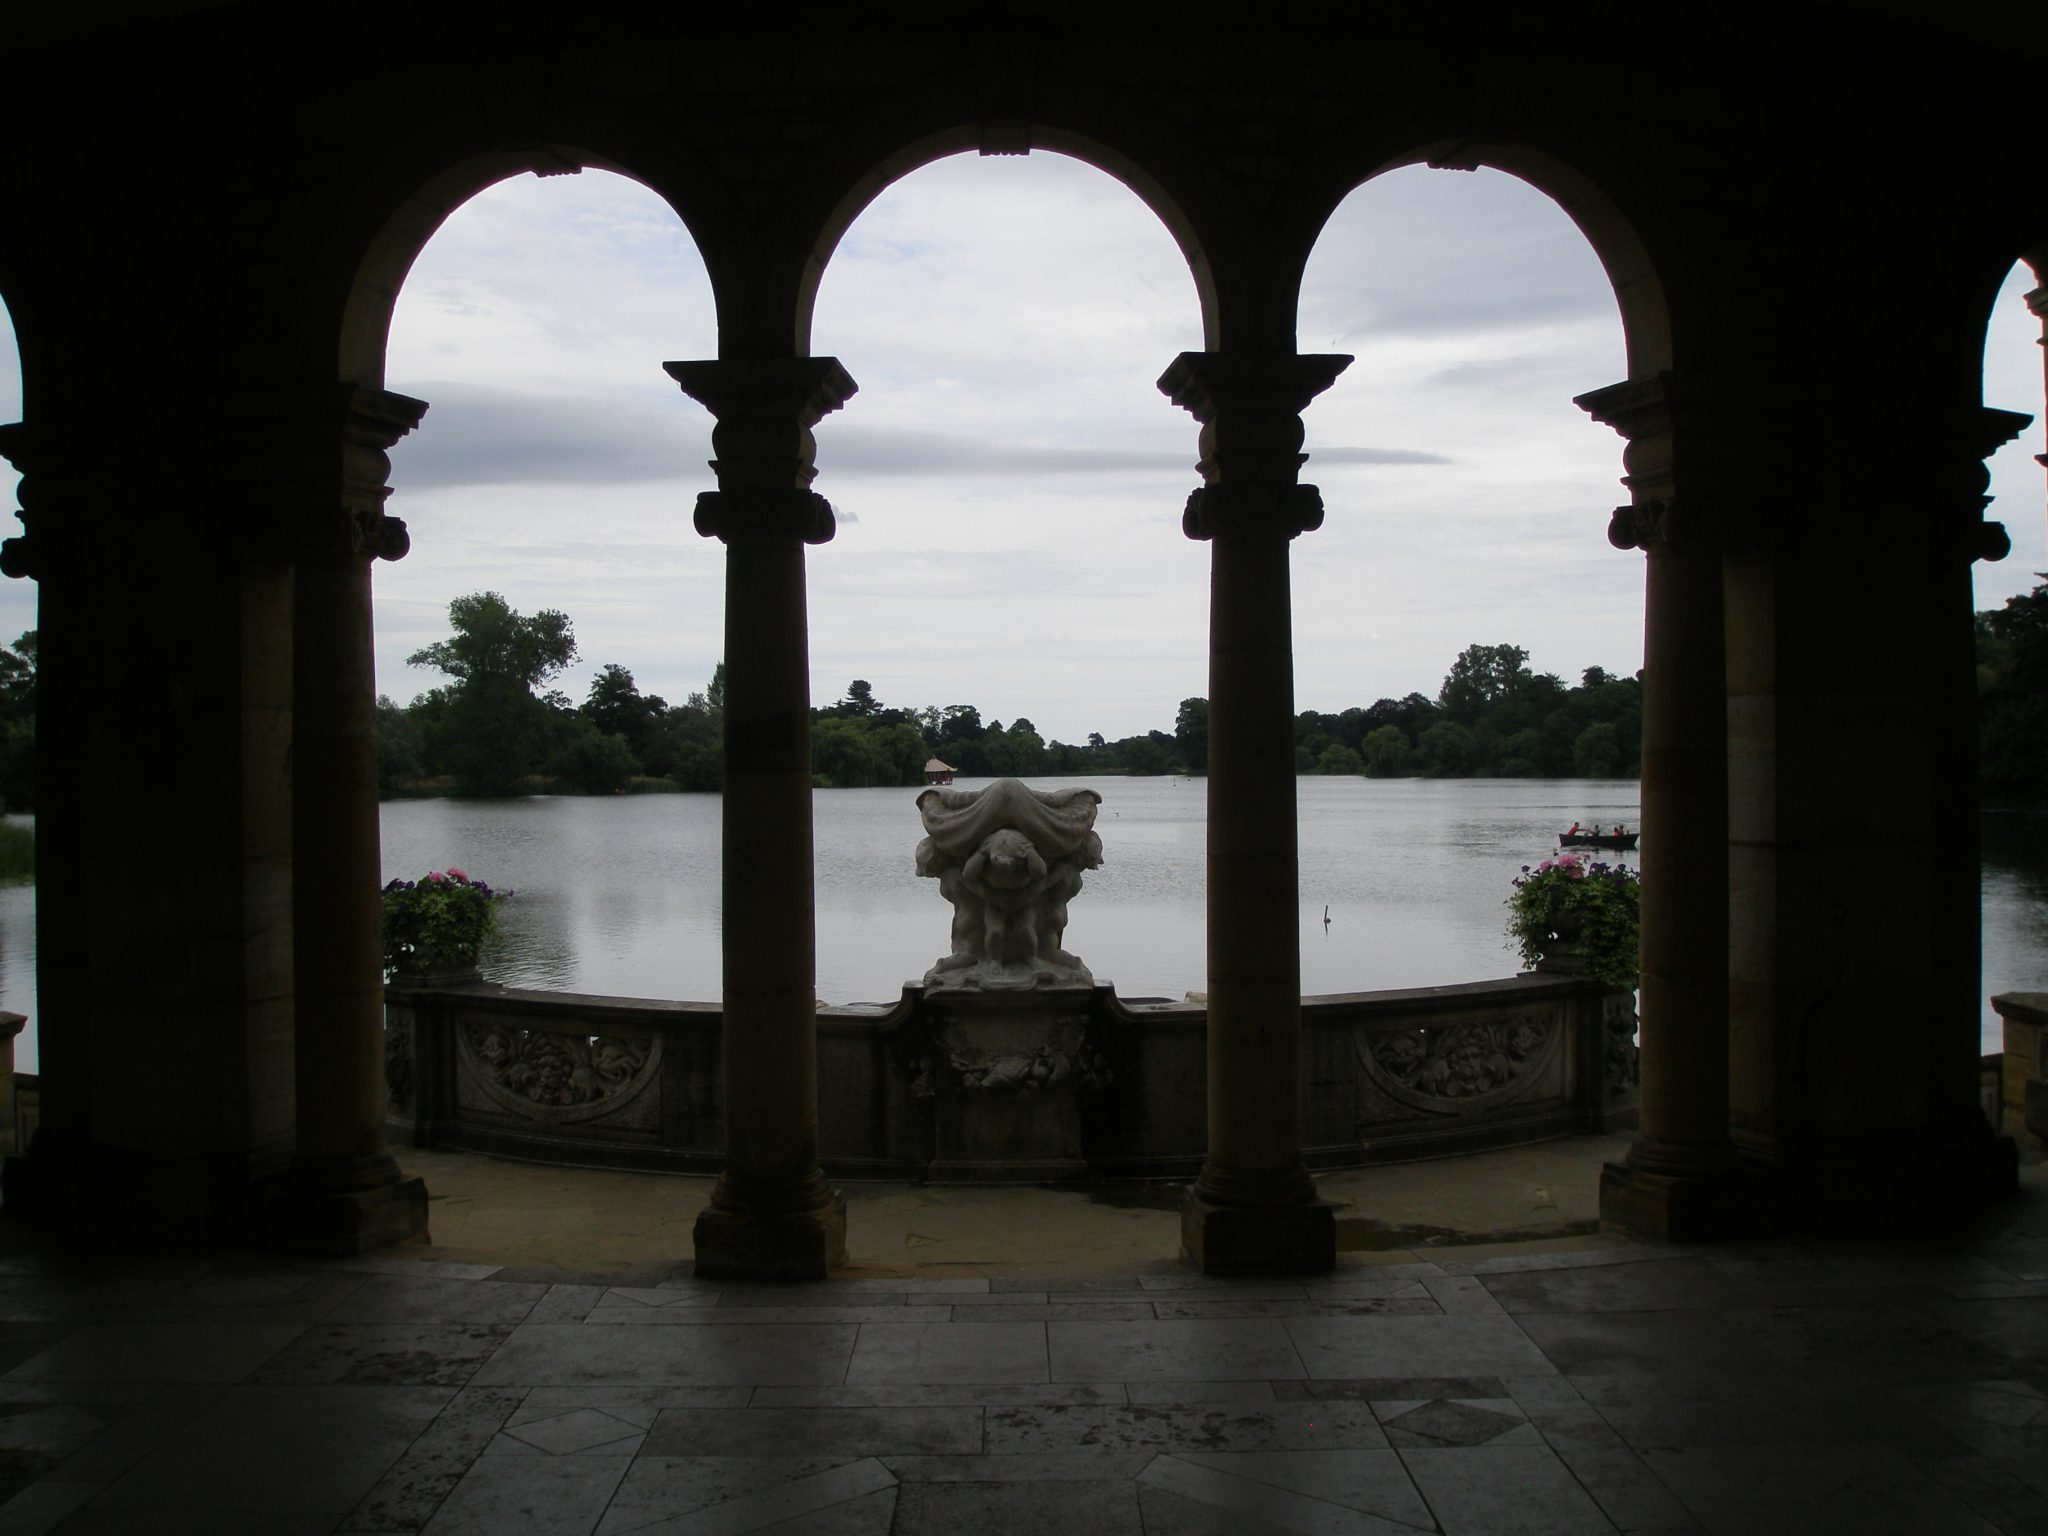 Our view from the Loggia, over the Lake, on a cloudy August morning.